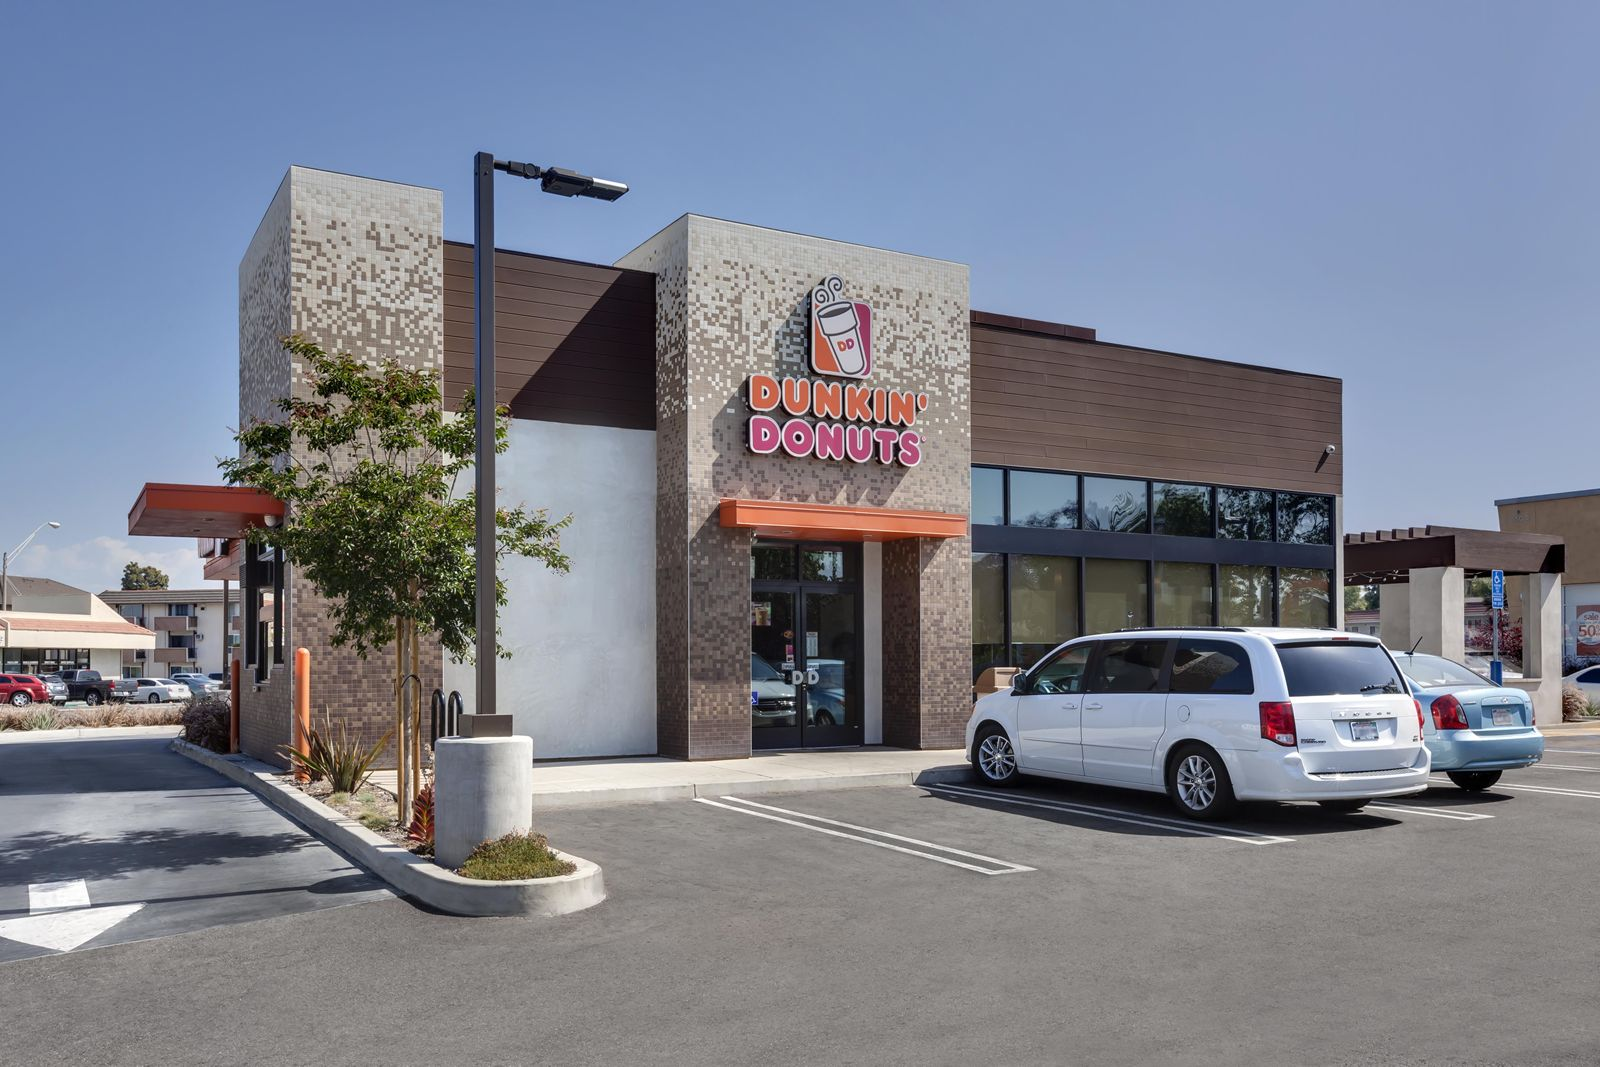 Dunkin' Donuts Announces Four New Restaurants In Expansion Plan For Raleigh, North Carolina With Existing Franchisee Awale Networks, Inc.